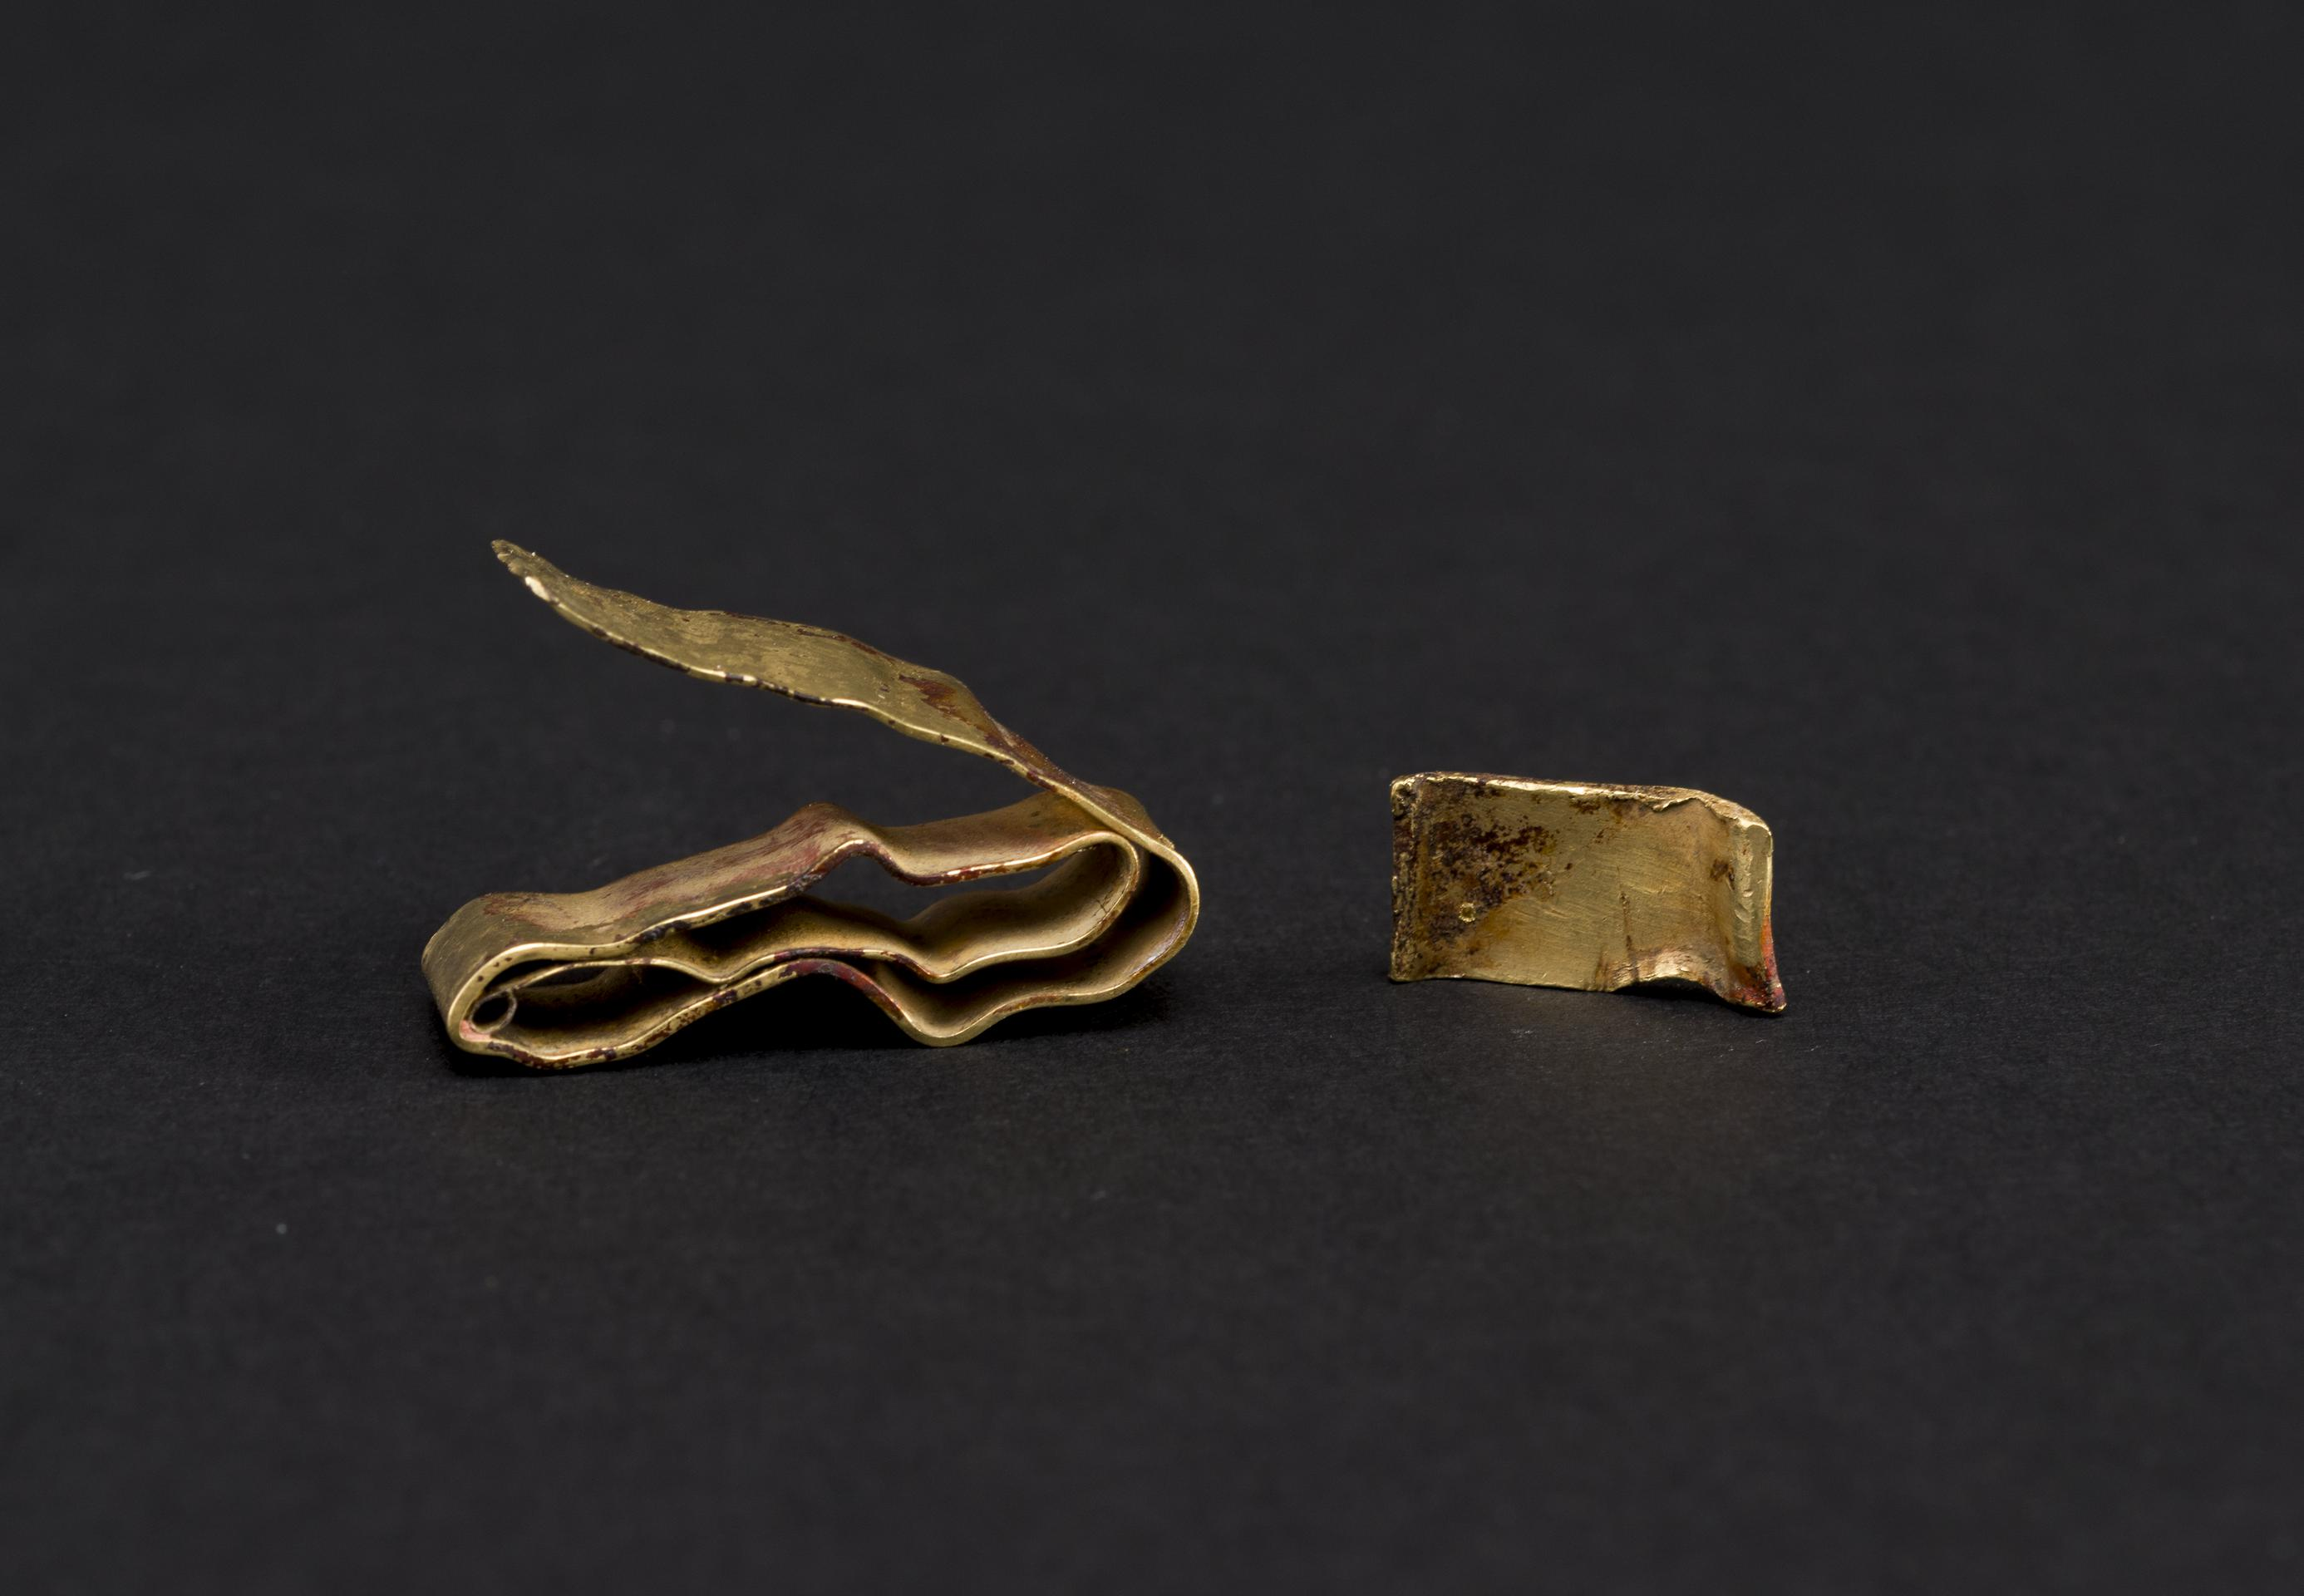 Open the image 'Late Bronze Age - gold bracelet & ribbon fragment'